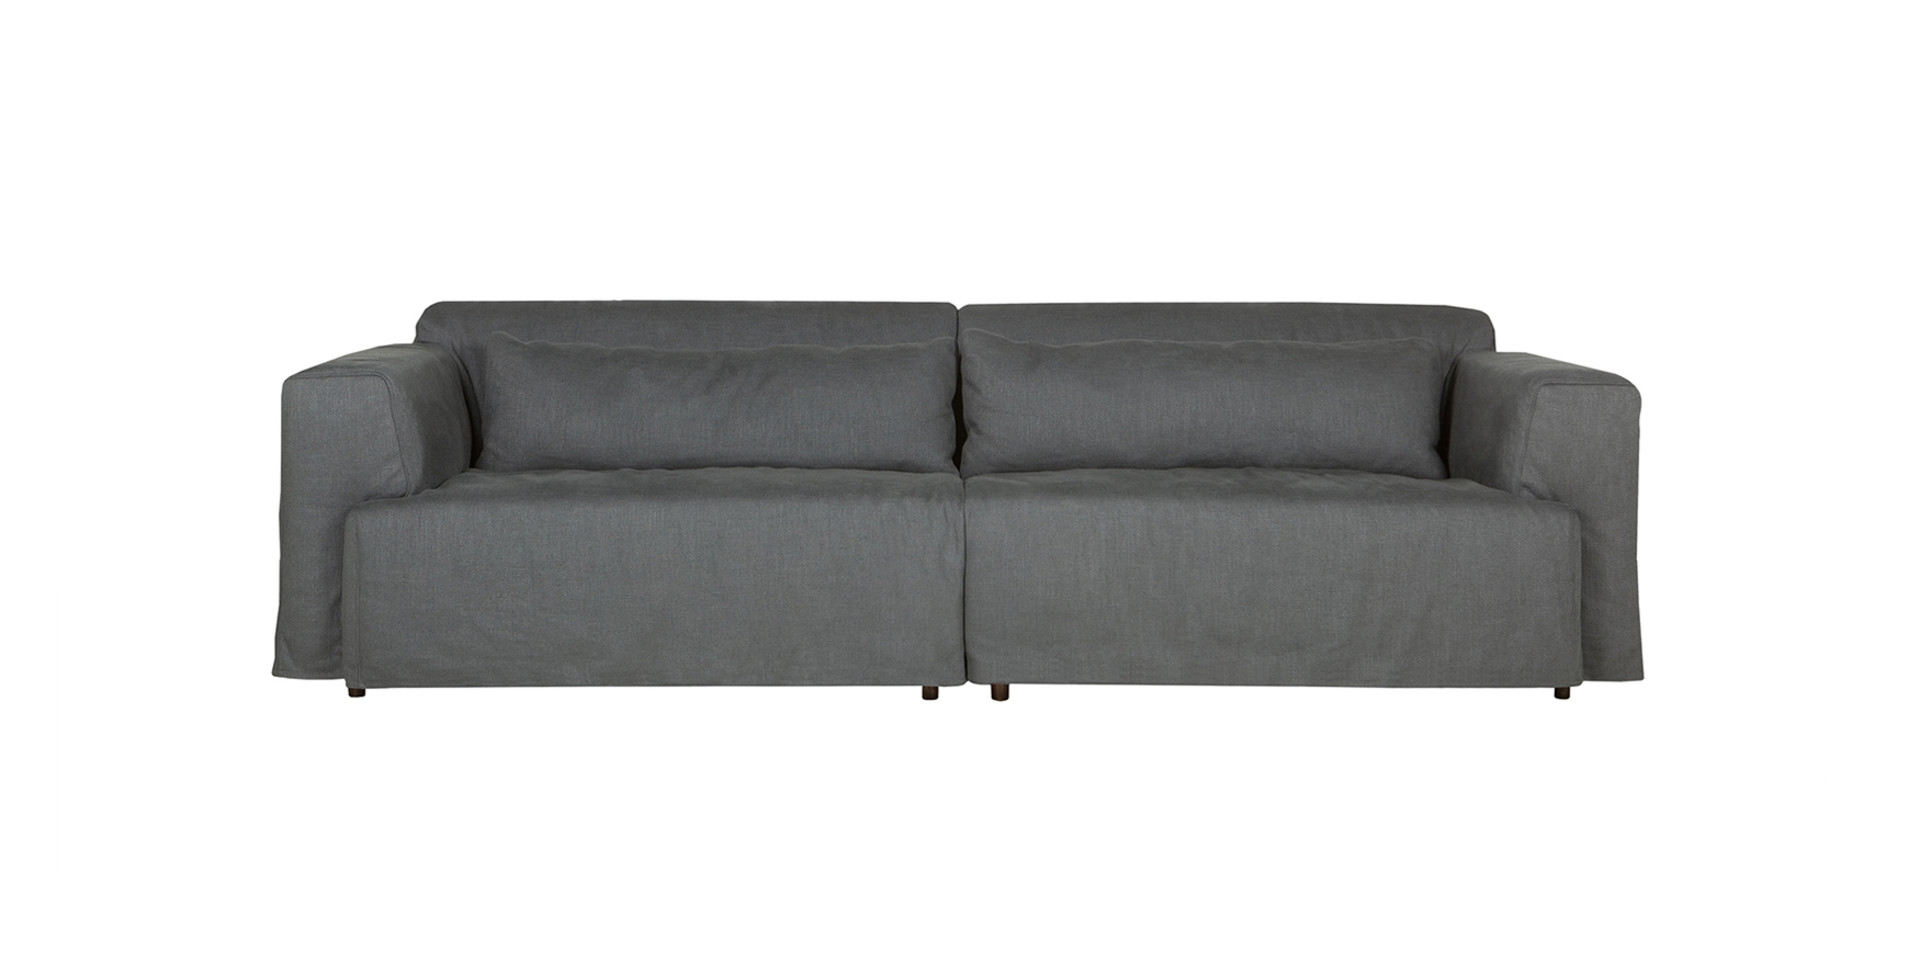 sits-leo-canape-4seater_sobral09_dark_grey_1